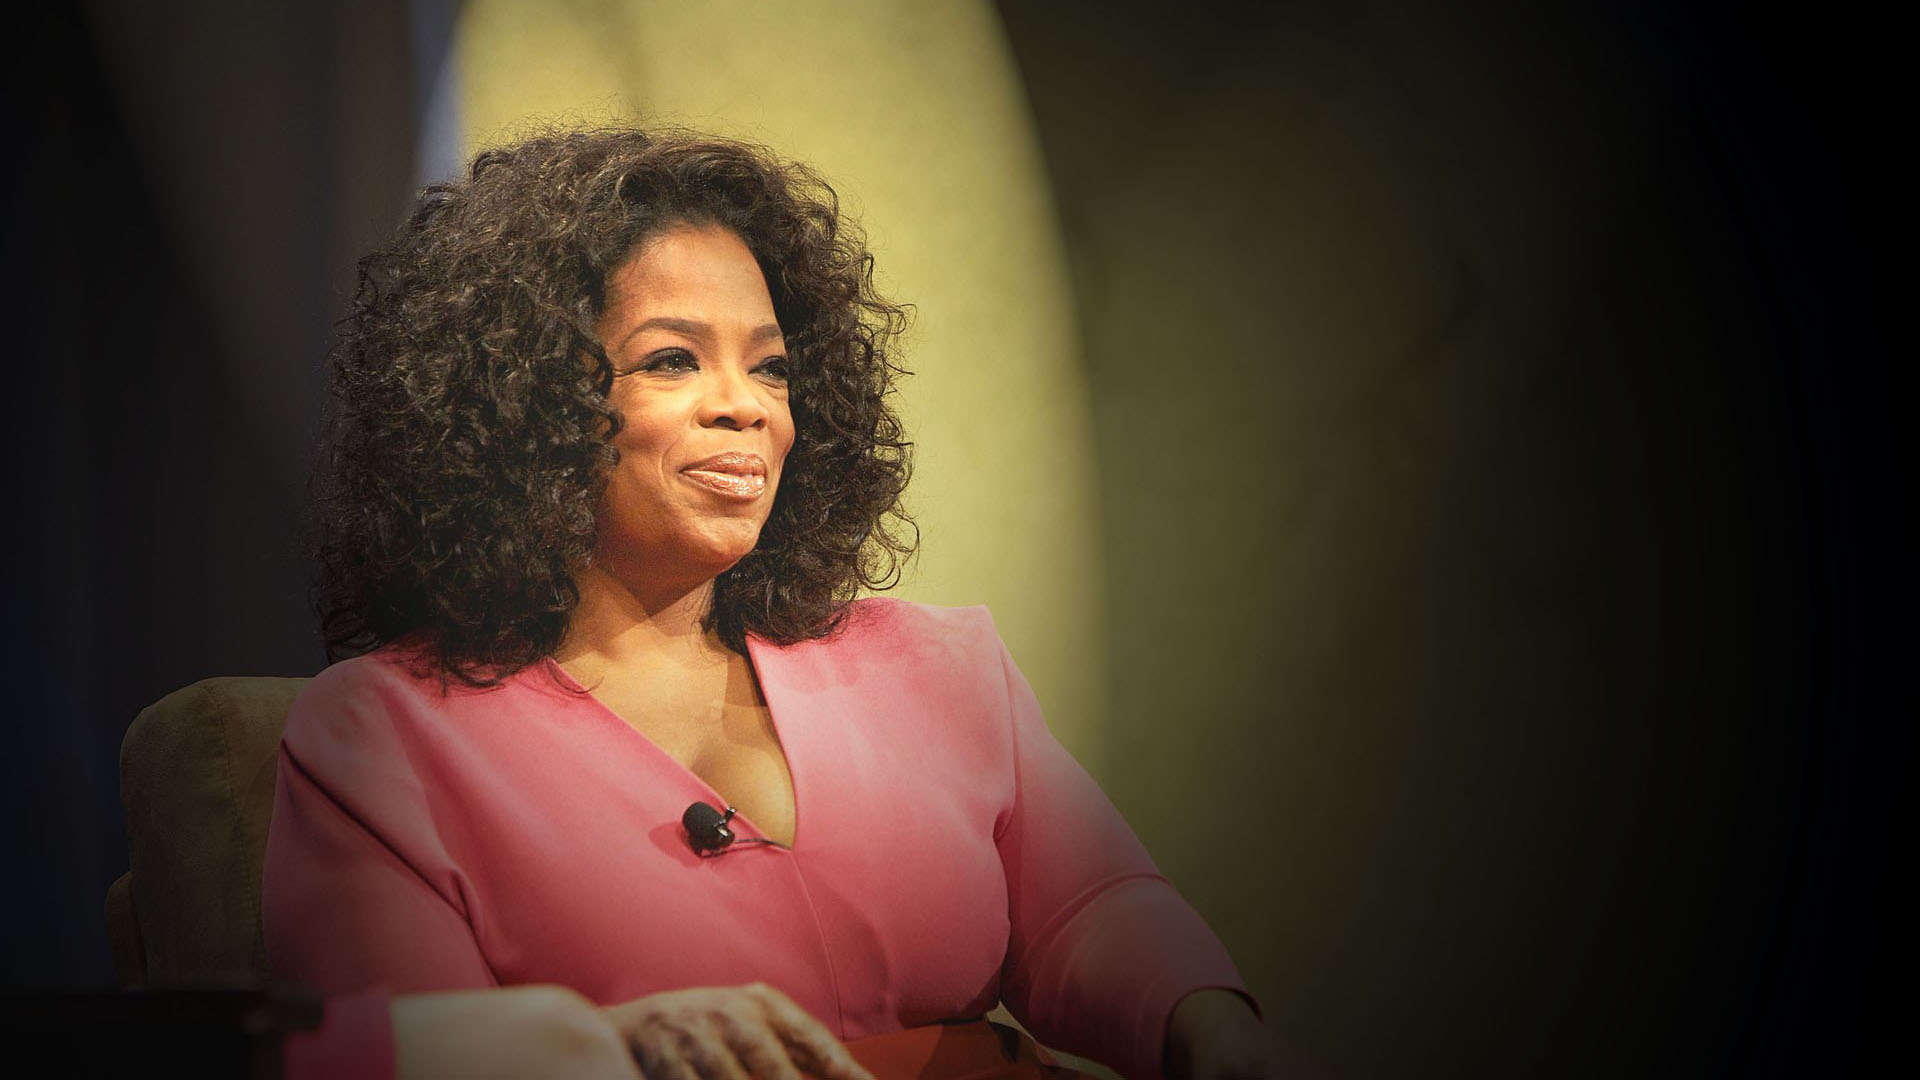 oprah winfrey desktop wallpaper 61151